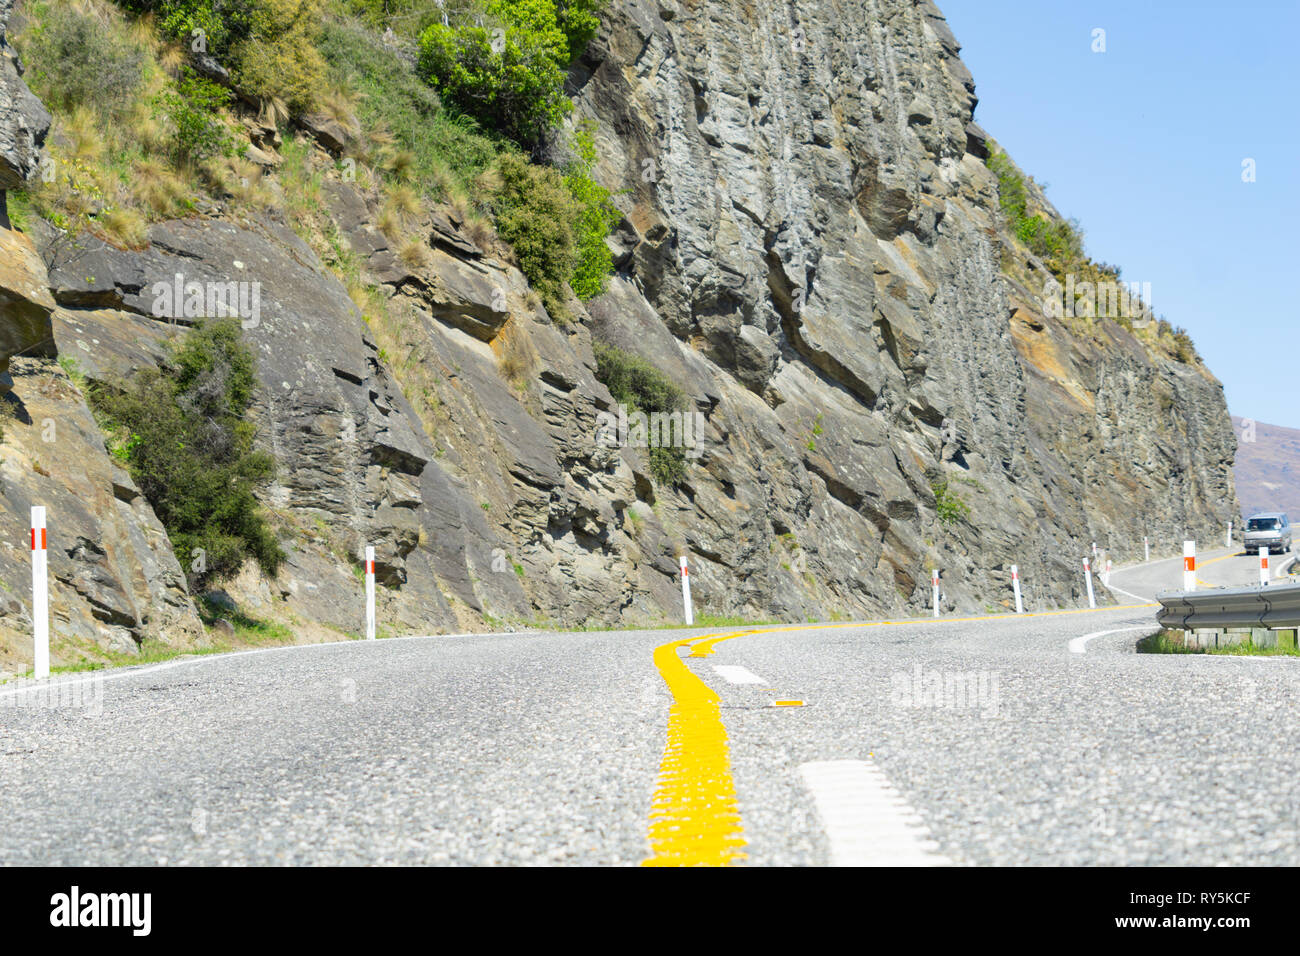 South Island curving highway with yellow no over-taking line through hills - Stock Image